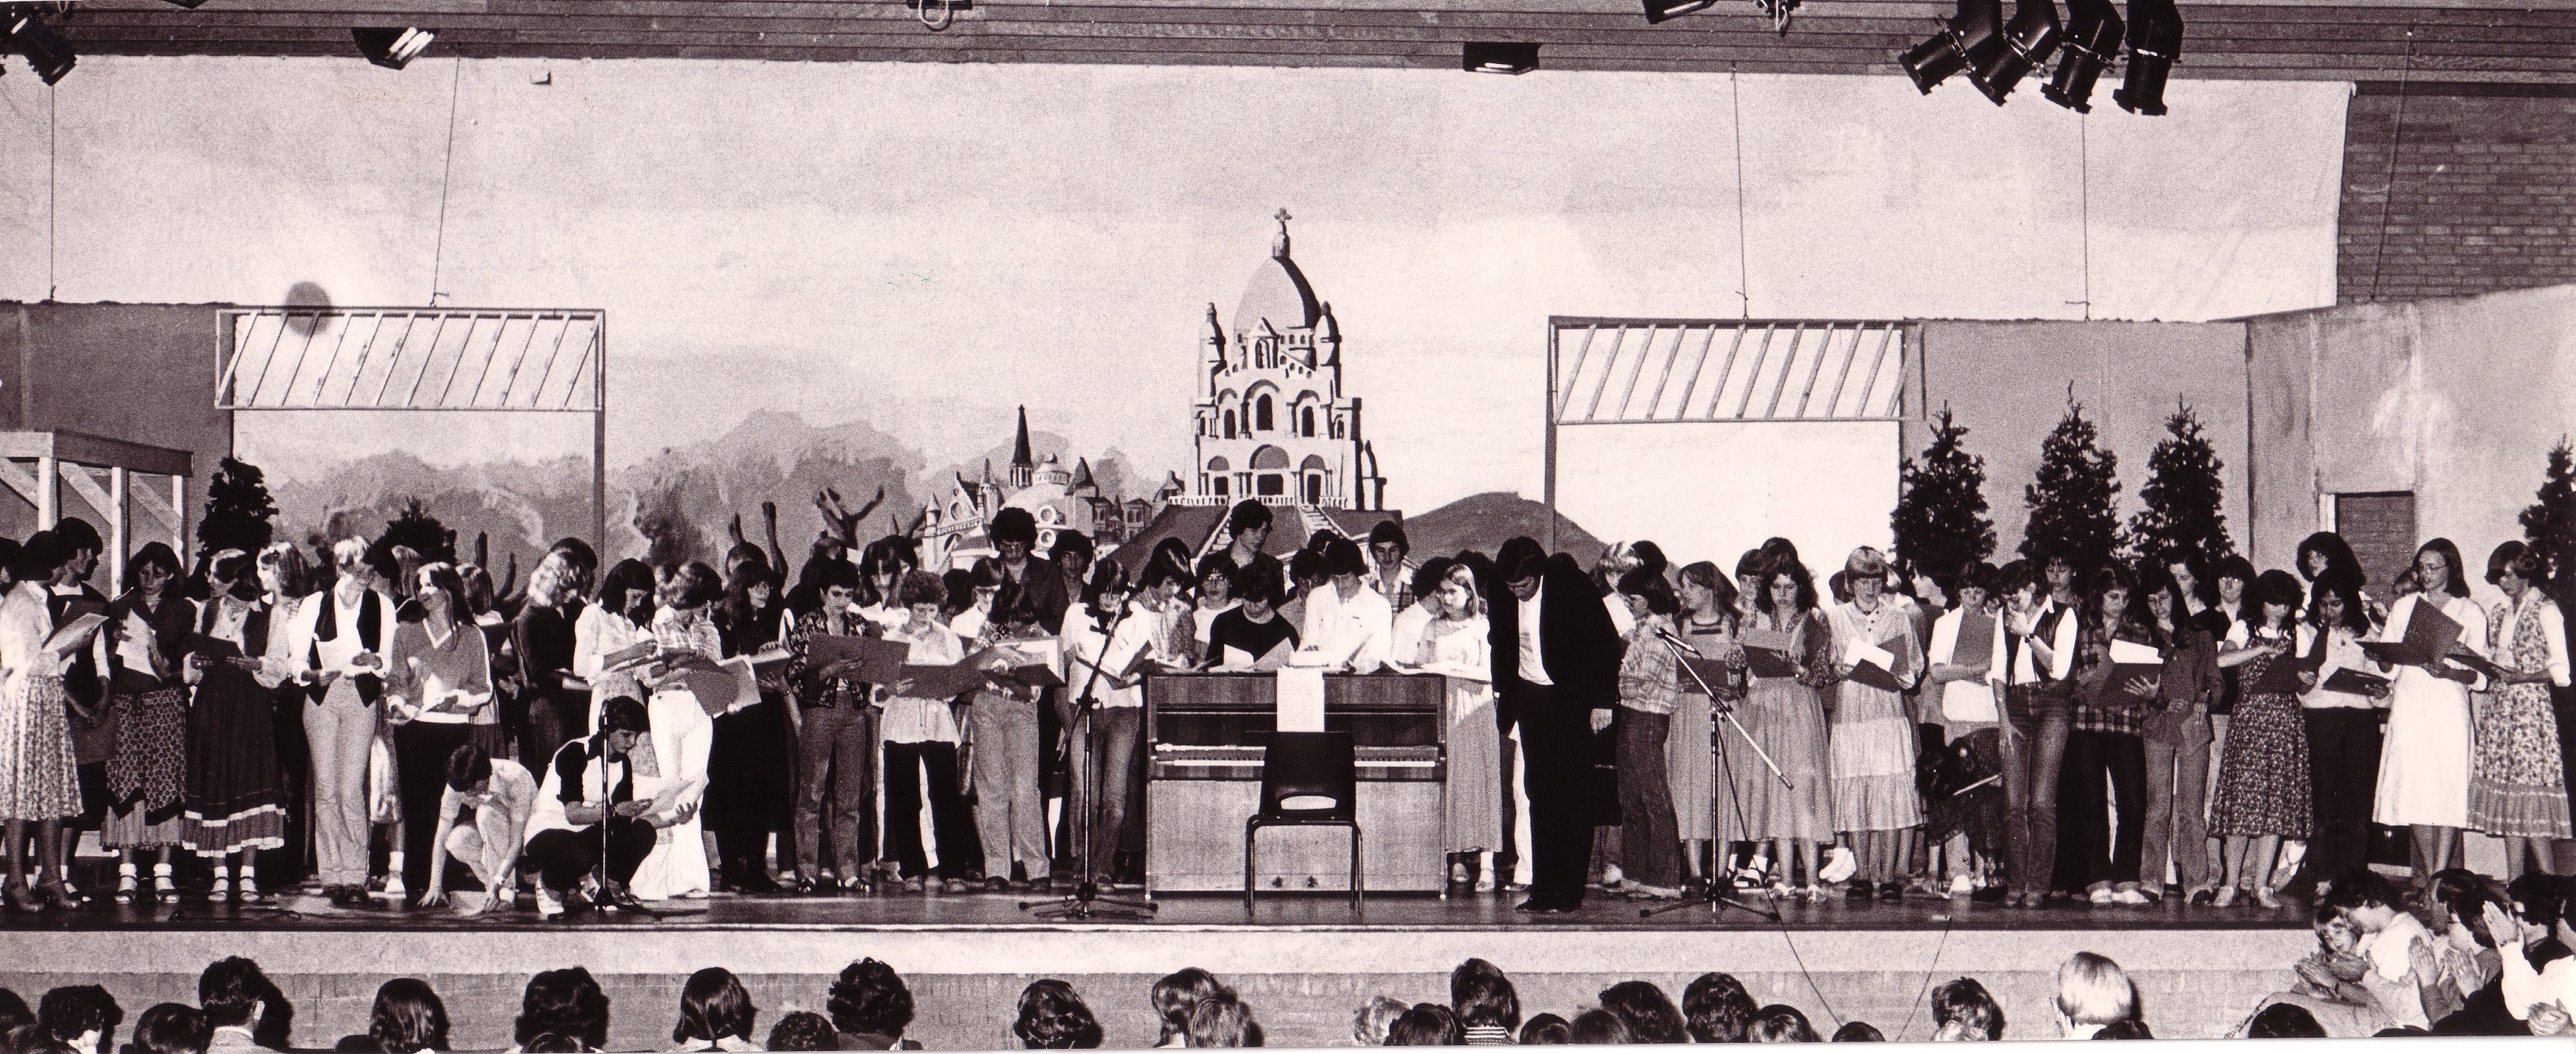 Schoolkoor The Happy Voices in 1978